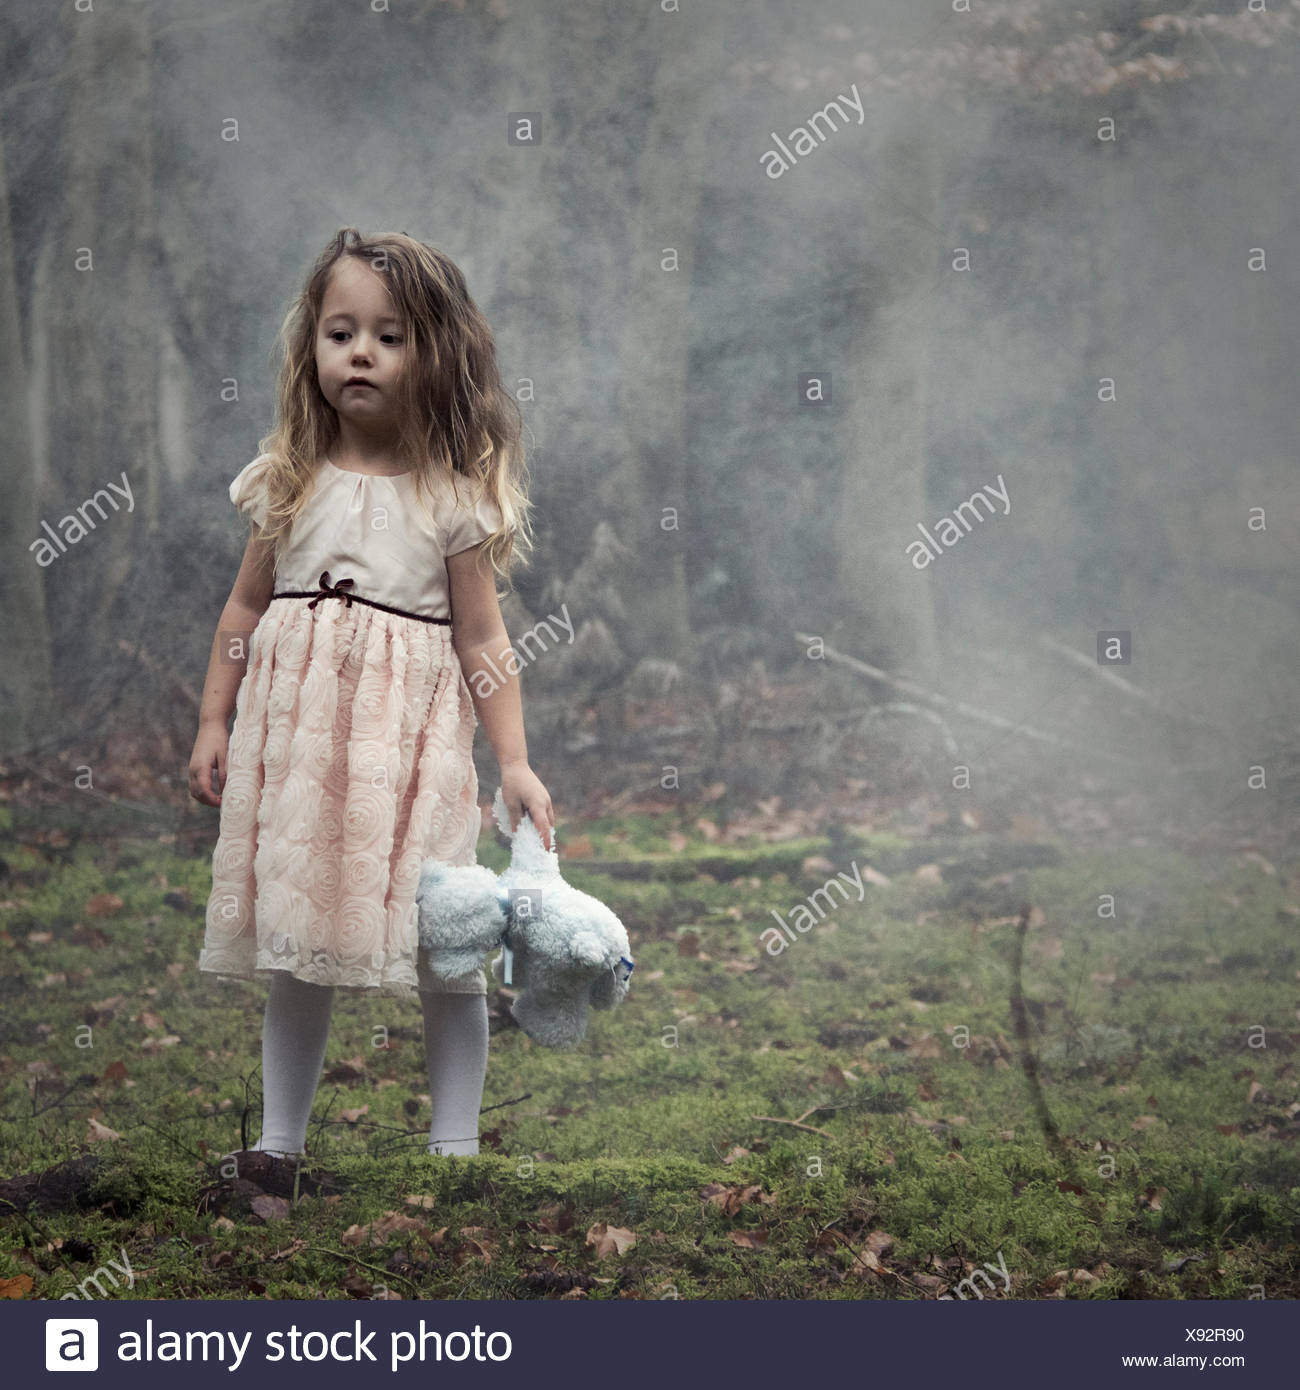 Girl standing in the woods holding a teddy bear - Stock Image